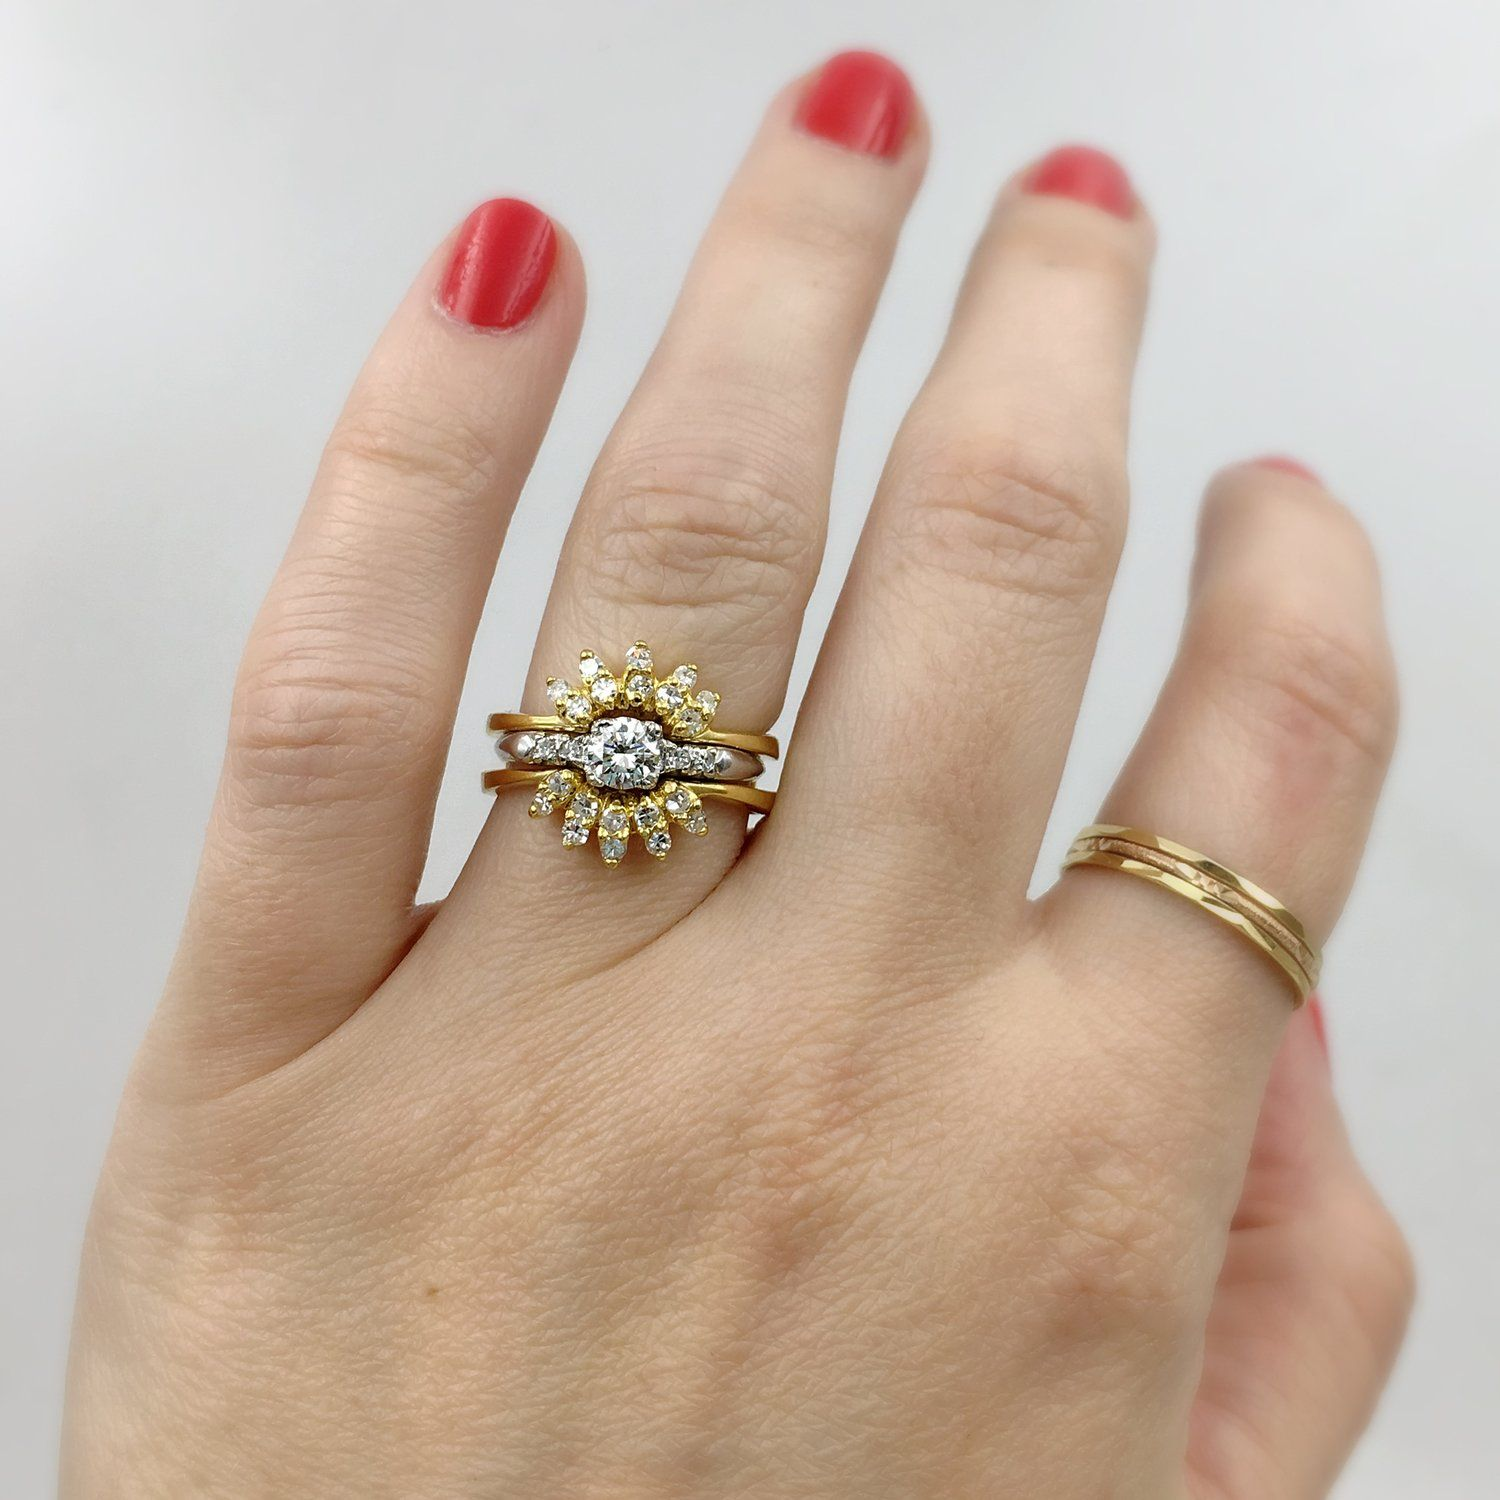 Yellow gold diamond guard ring, vintage curved wedding